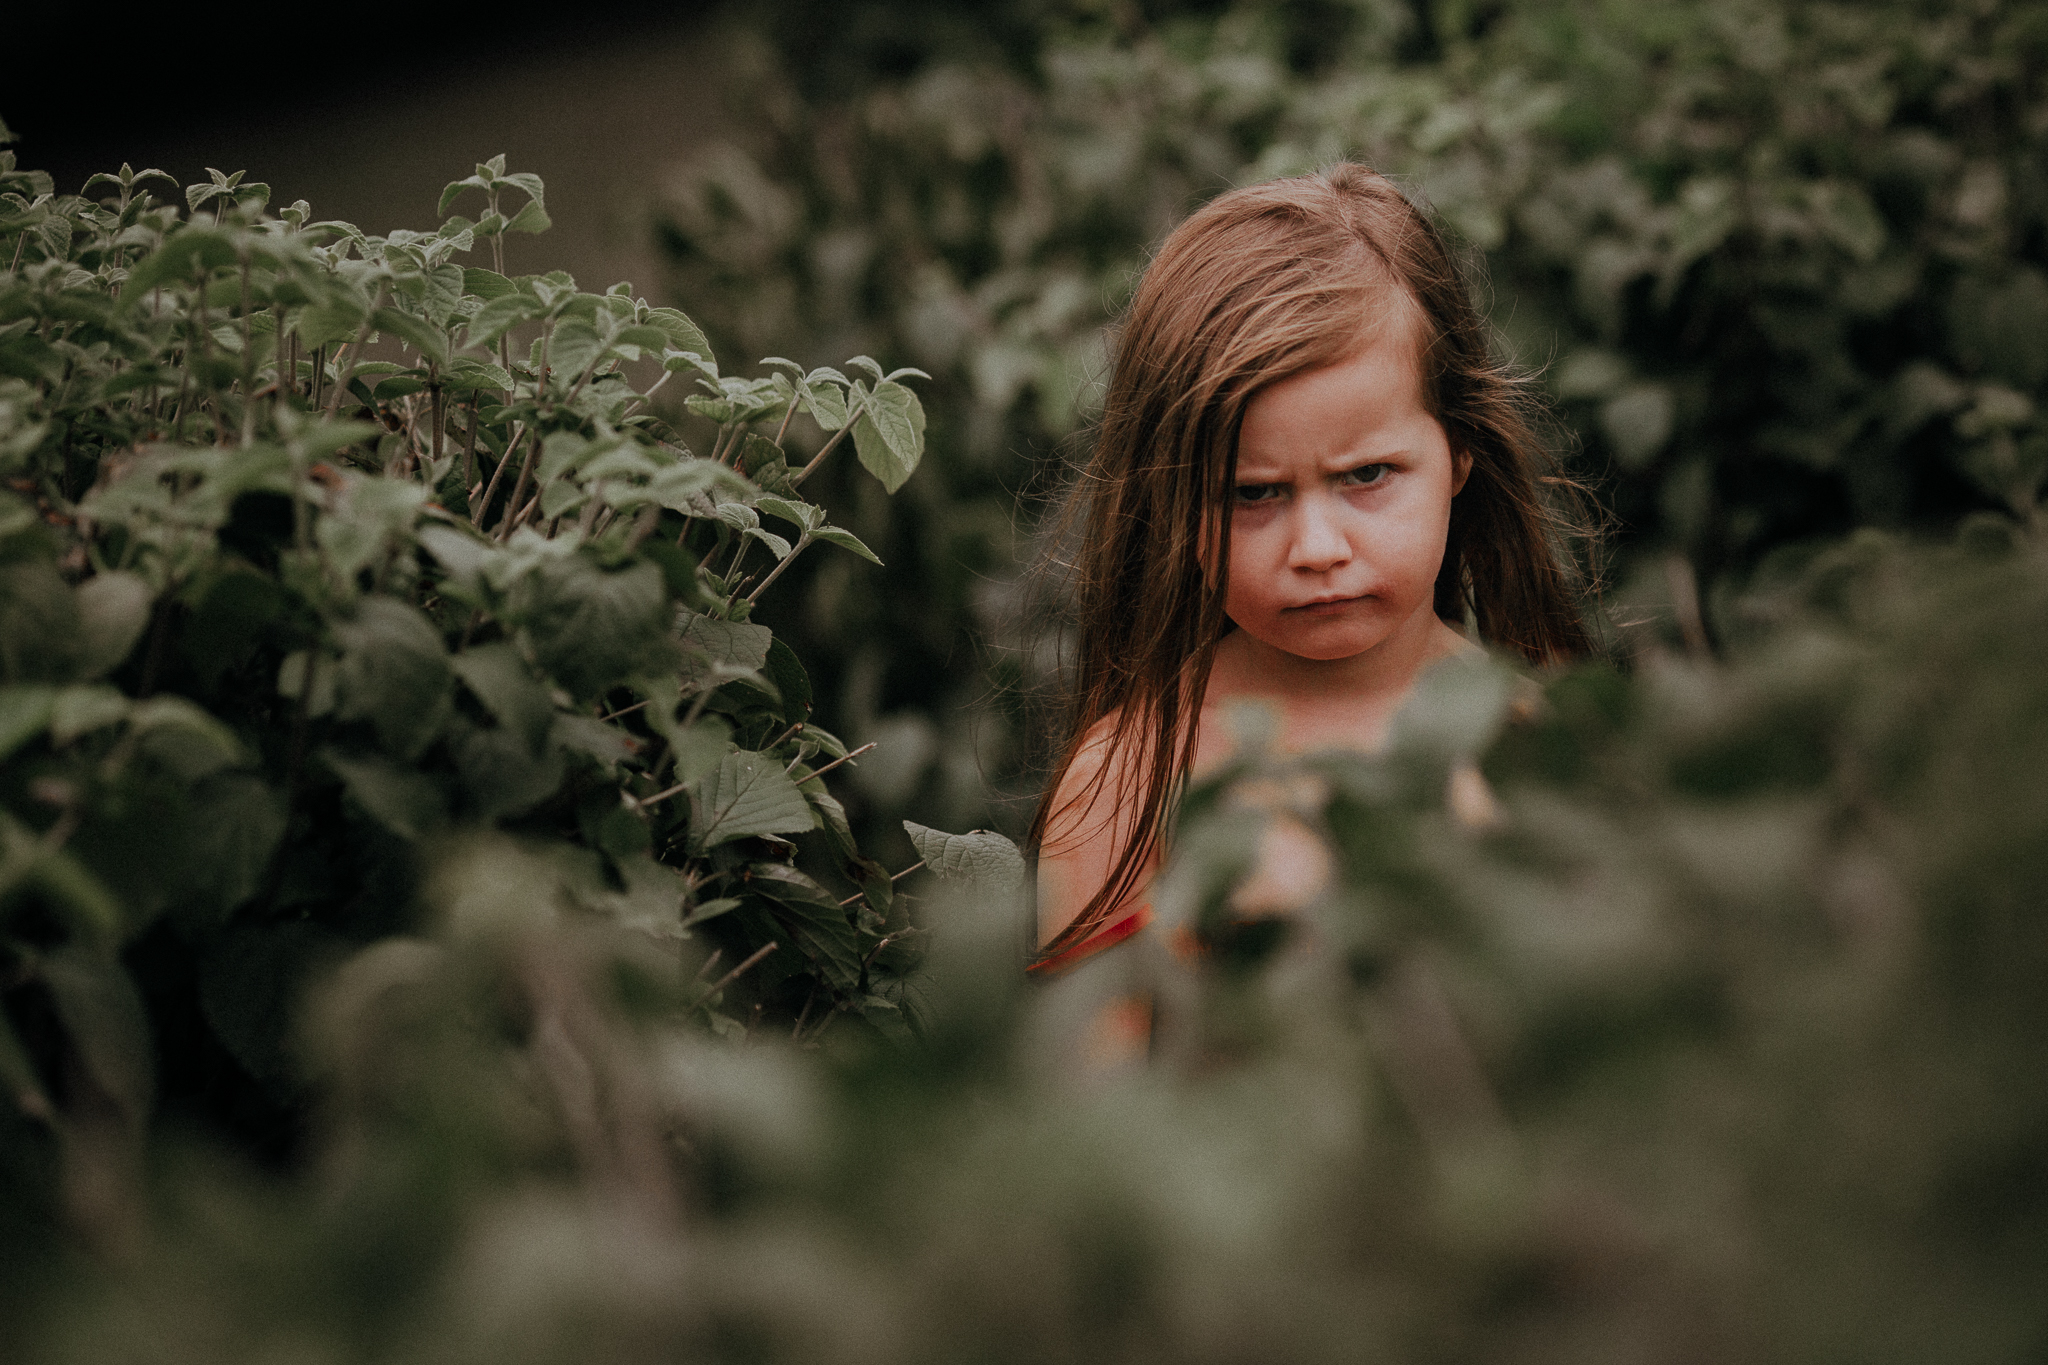 girl scowling at camera from bushes summer Ashburn Loudoun Northern Virginia family lifestyle documentary childhood Marti Austin Photography